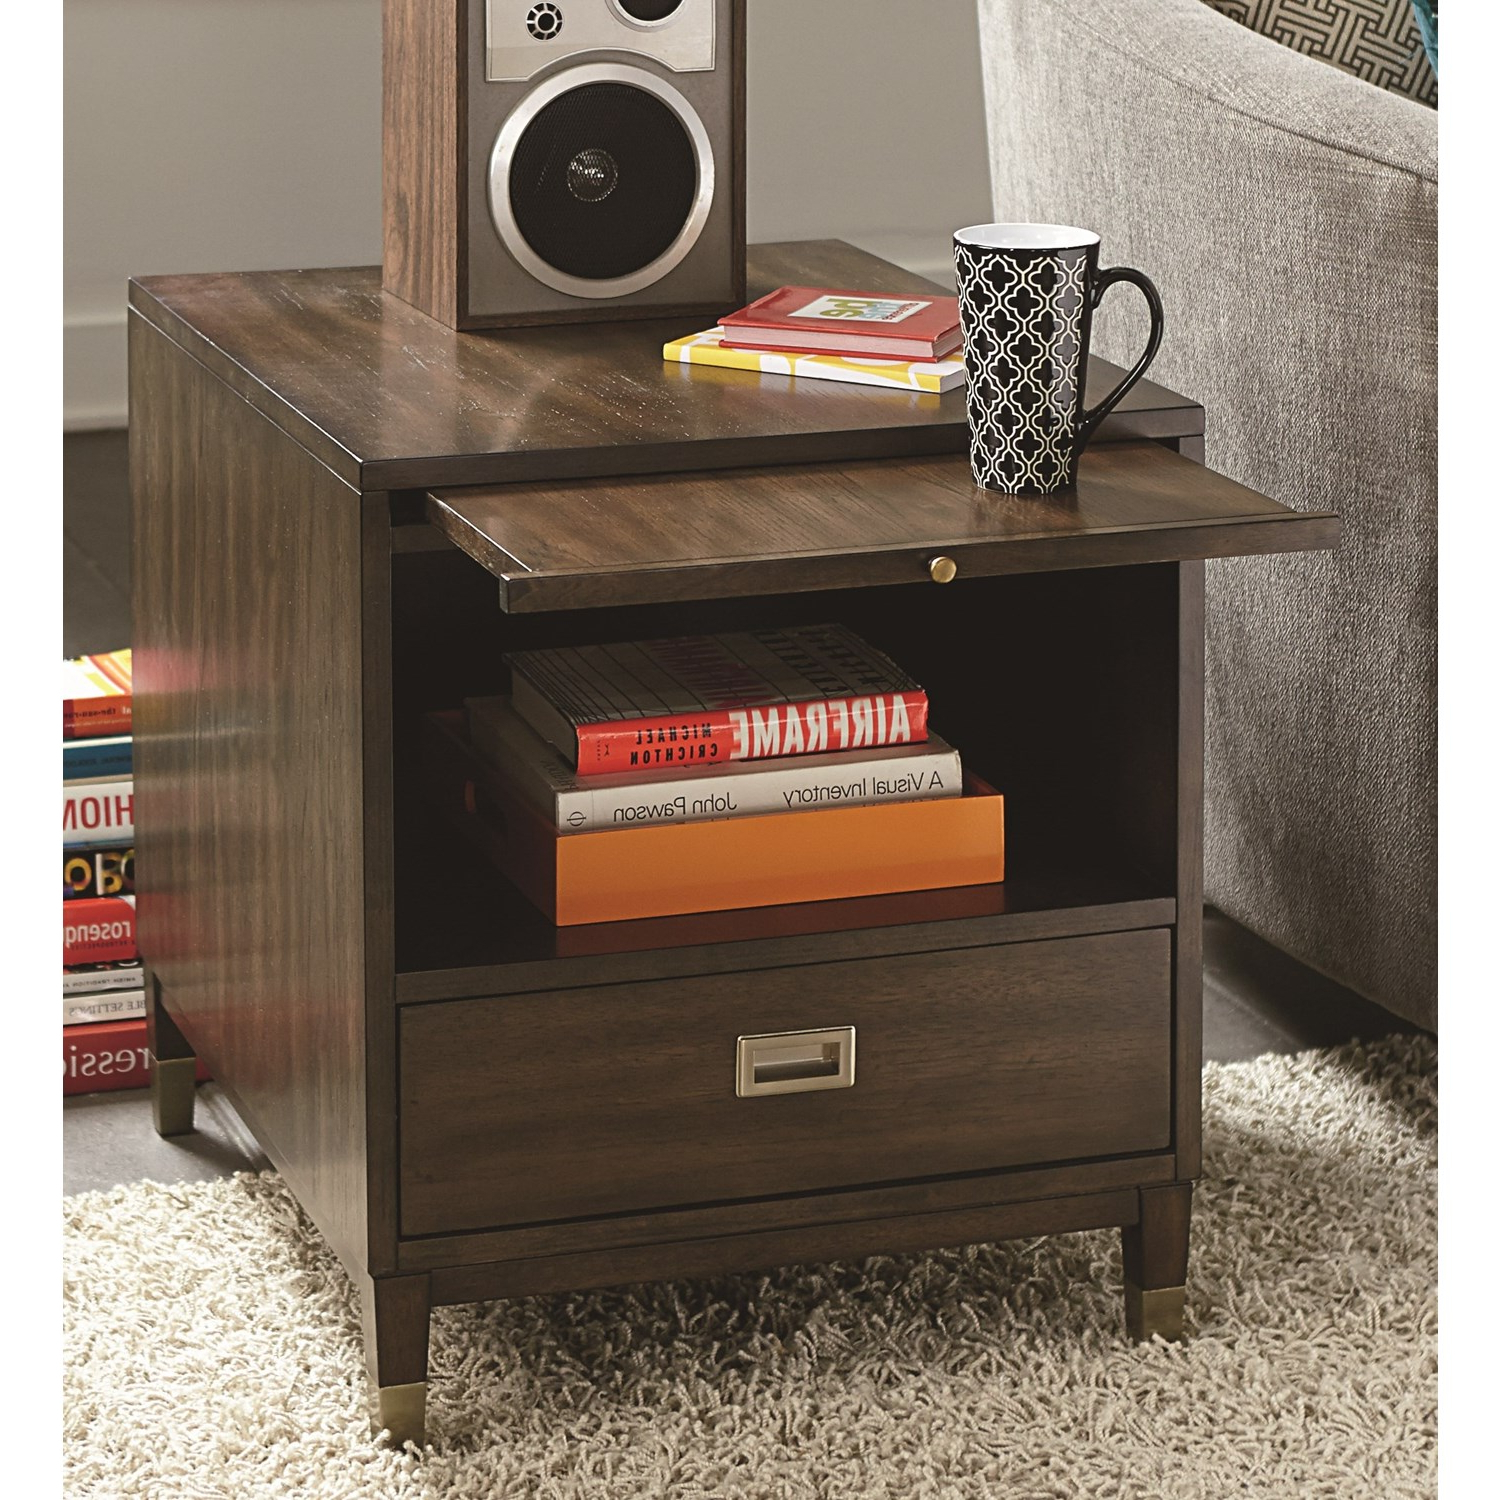 Hammary Furniture Stratus Umber Brown Pecan Rectangular Drawer End Throughout 2018 Stratus Cocktail Tables (Gallery 15 of 20)